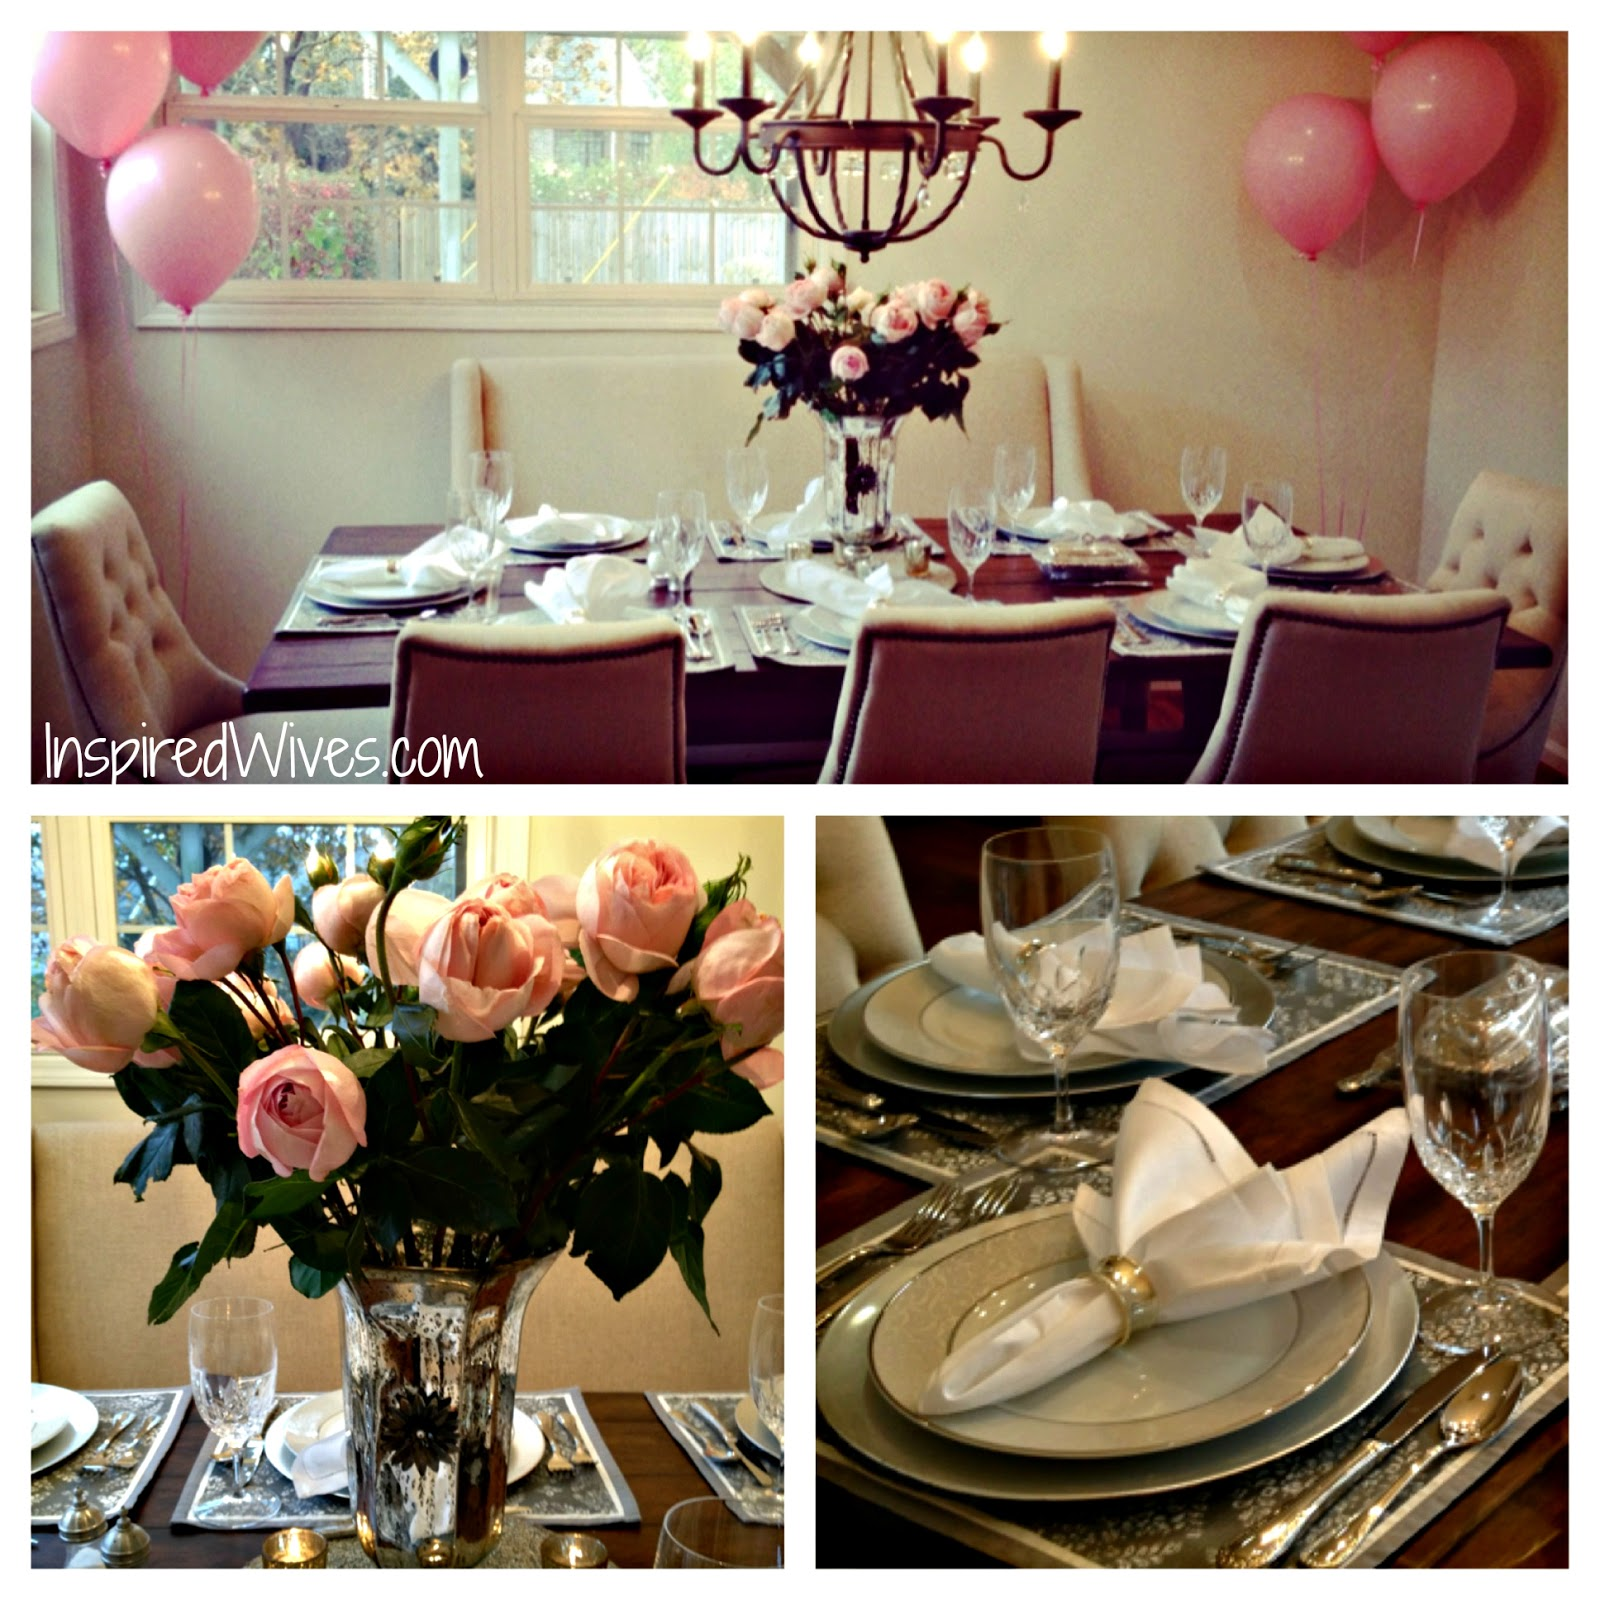 Home » posts » dinner party » dinner party themes for adults. Inspired I Dos: Elegant Dinner Party (Think Pink)